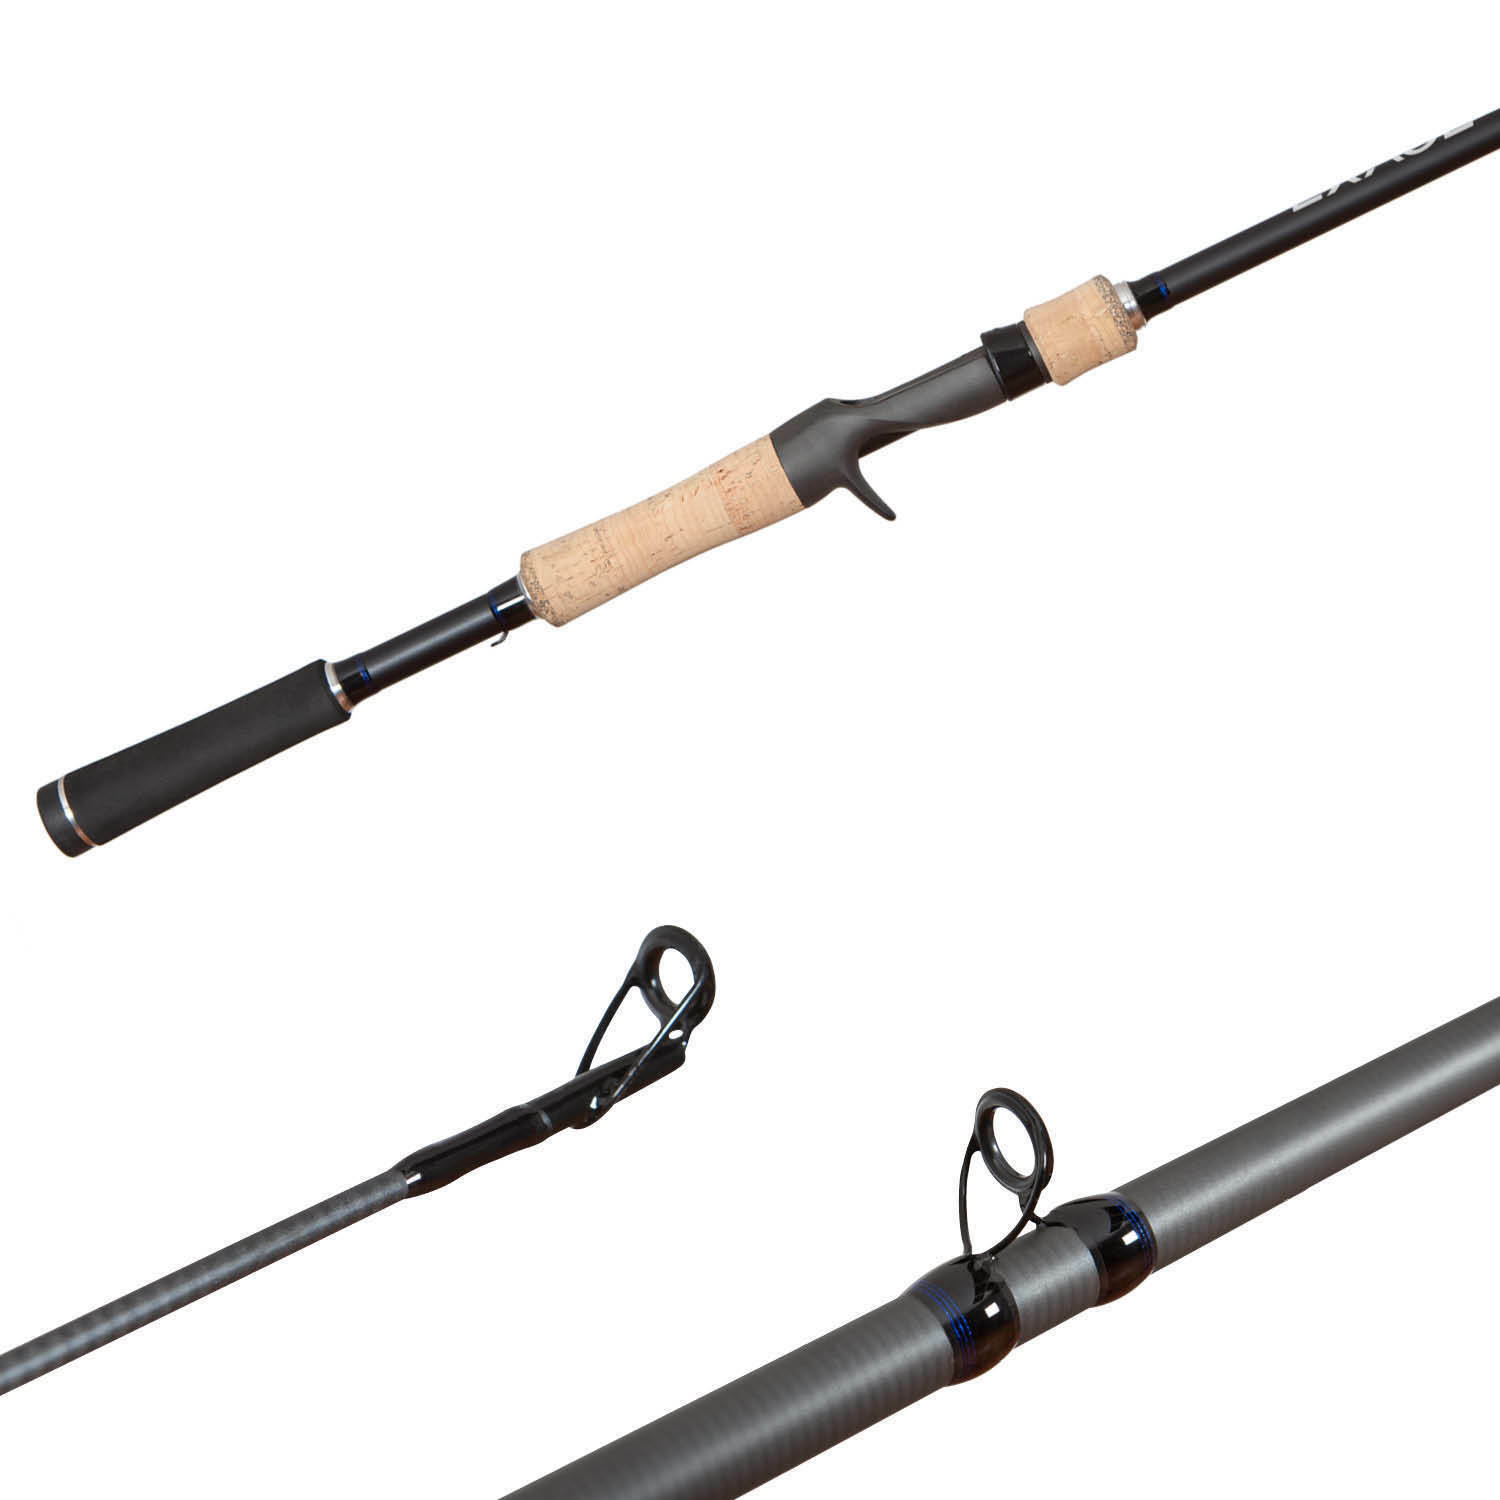 Shimano Exage Casting 6'10  Med Heavy 1-Piece Rod  XAC610MH - FREE SHIPPING -  comfortable